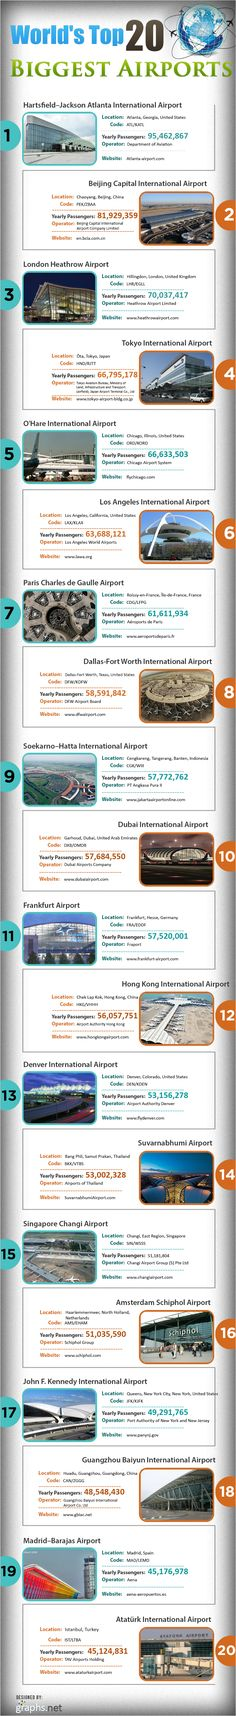 World's Top 20 Biggest Airports Infographic vip hall service with aviapersona. Airline Pilot, Airline Logo, Private Pilot License, Airport Design, Passenger Aircraft, Private Plane, Aerospace Engineering, Aviation Industry, Commercial Aircraft